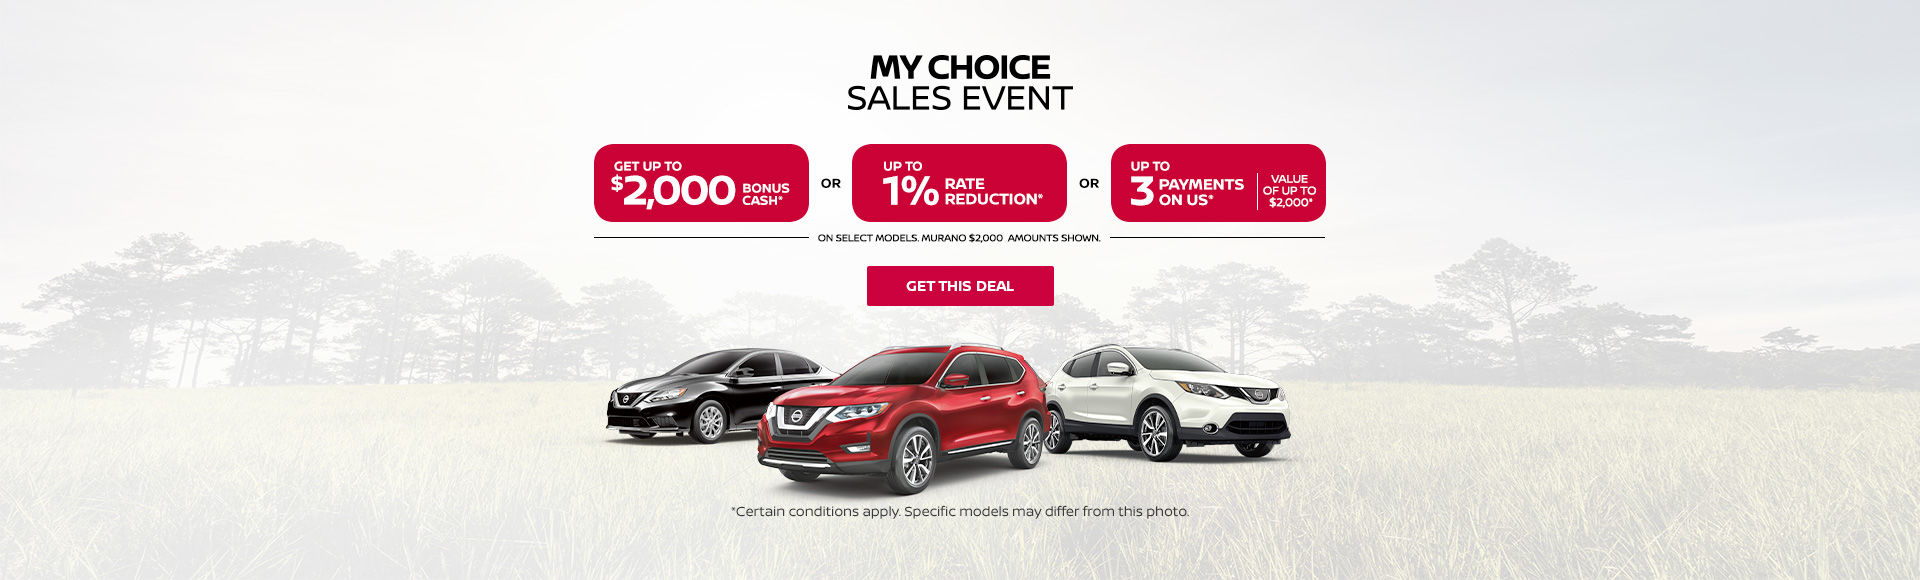 Nissan's 5 Day sale